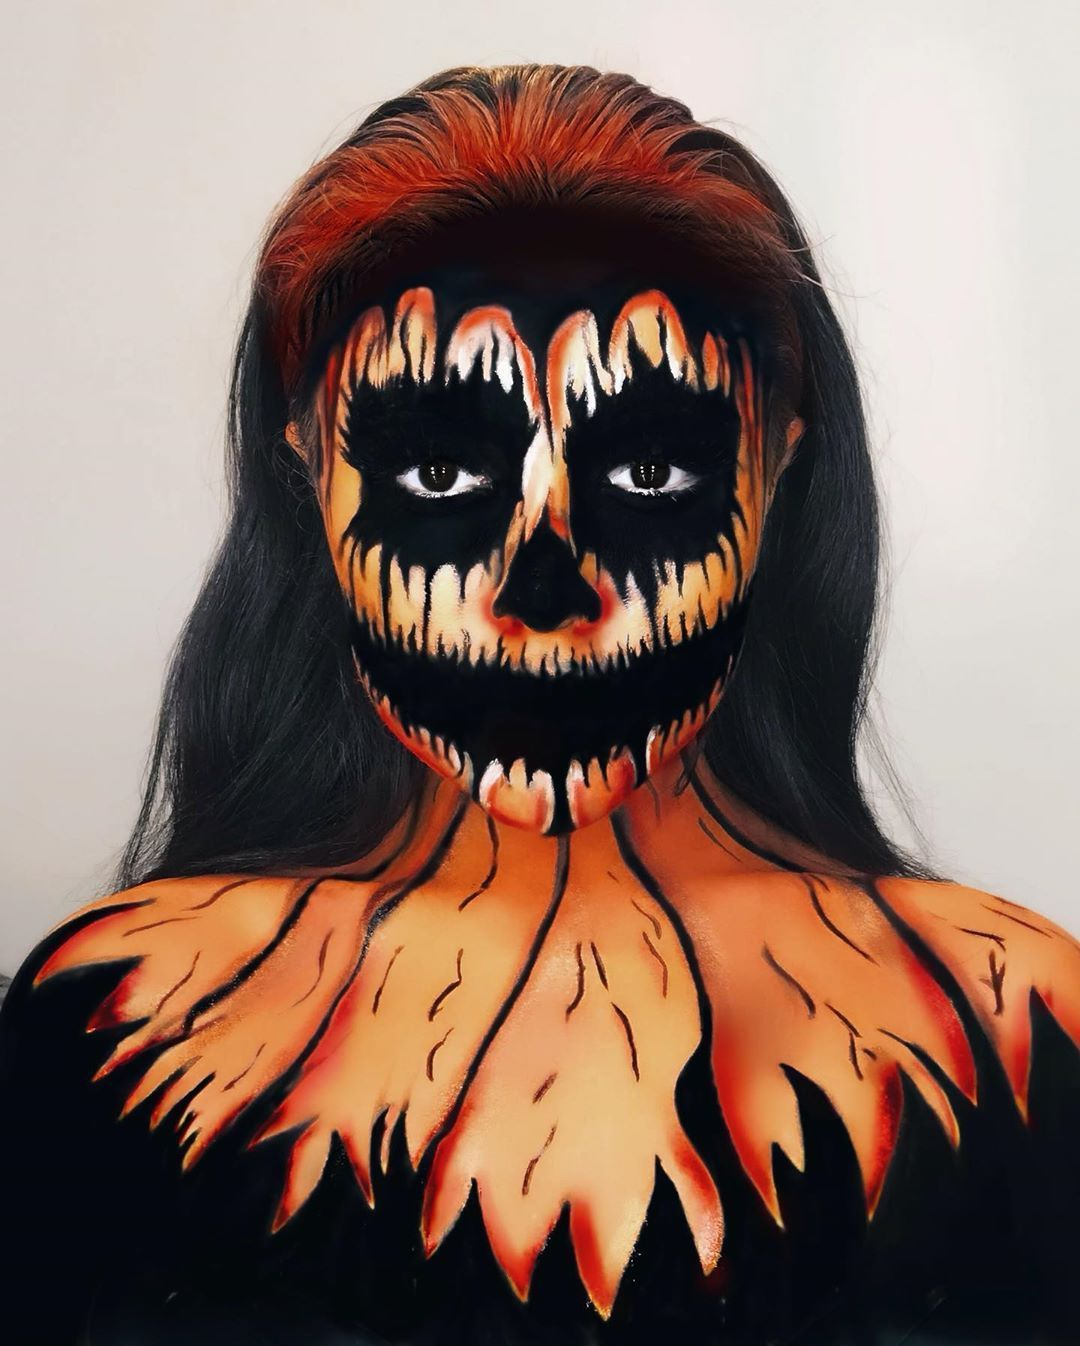 PUMPKIN ON FIRE 2019 vs 2018  This really does show me my progression  Inspo @makeupbymeg____  @ispyeyes blackout lenses  @nyxcosmetics black liquid eyeliner  @diamondfx_official pastels palette @staceymariemua carnival pallet @mehronmakeup black and white face paint  #31daysofhalloween #mehronmakeup #31daysofhalloweenmakeup #mehron #pumpkinmakeup #pumpkin #halloween2019 #halloweenmakeup #sfxmakeup #crazymakeup #facepaint #halloweenmakeupideas #progress #dollmakeup #halloween #dollfacepainting P #dollfacepainting